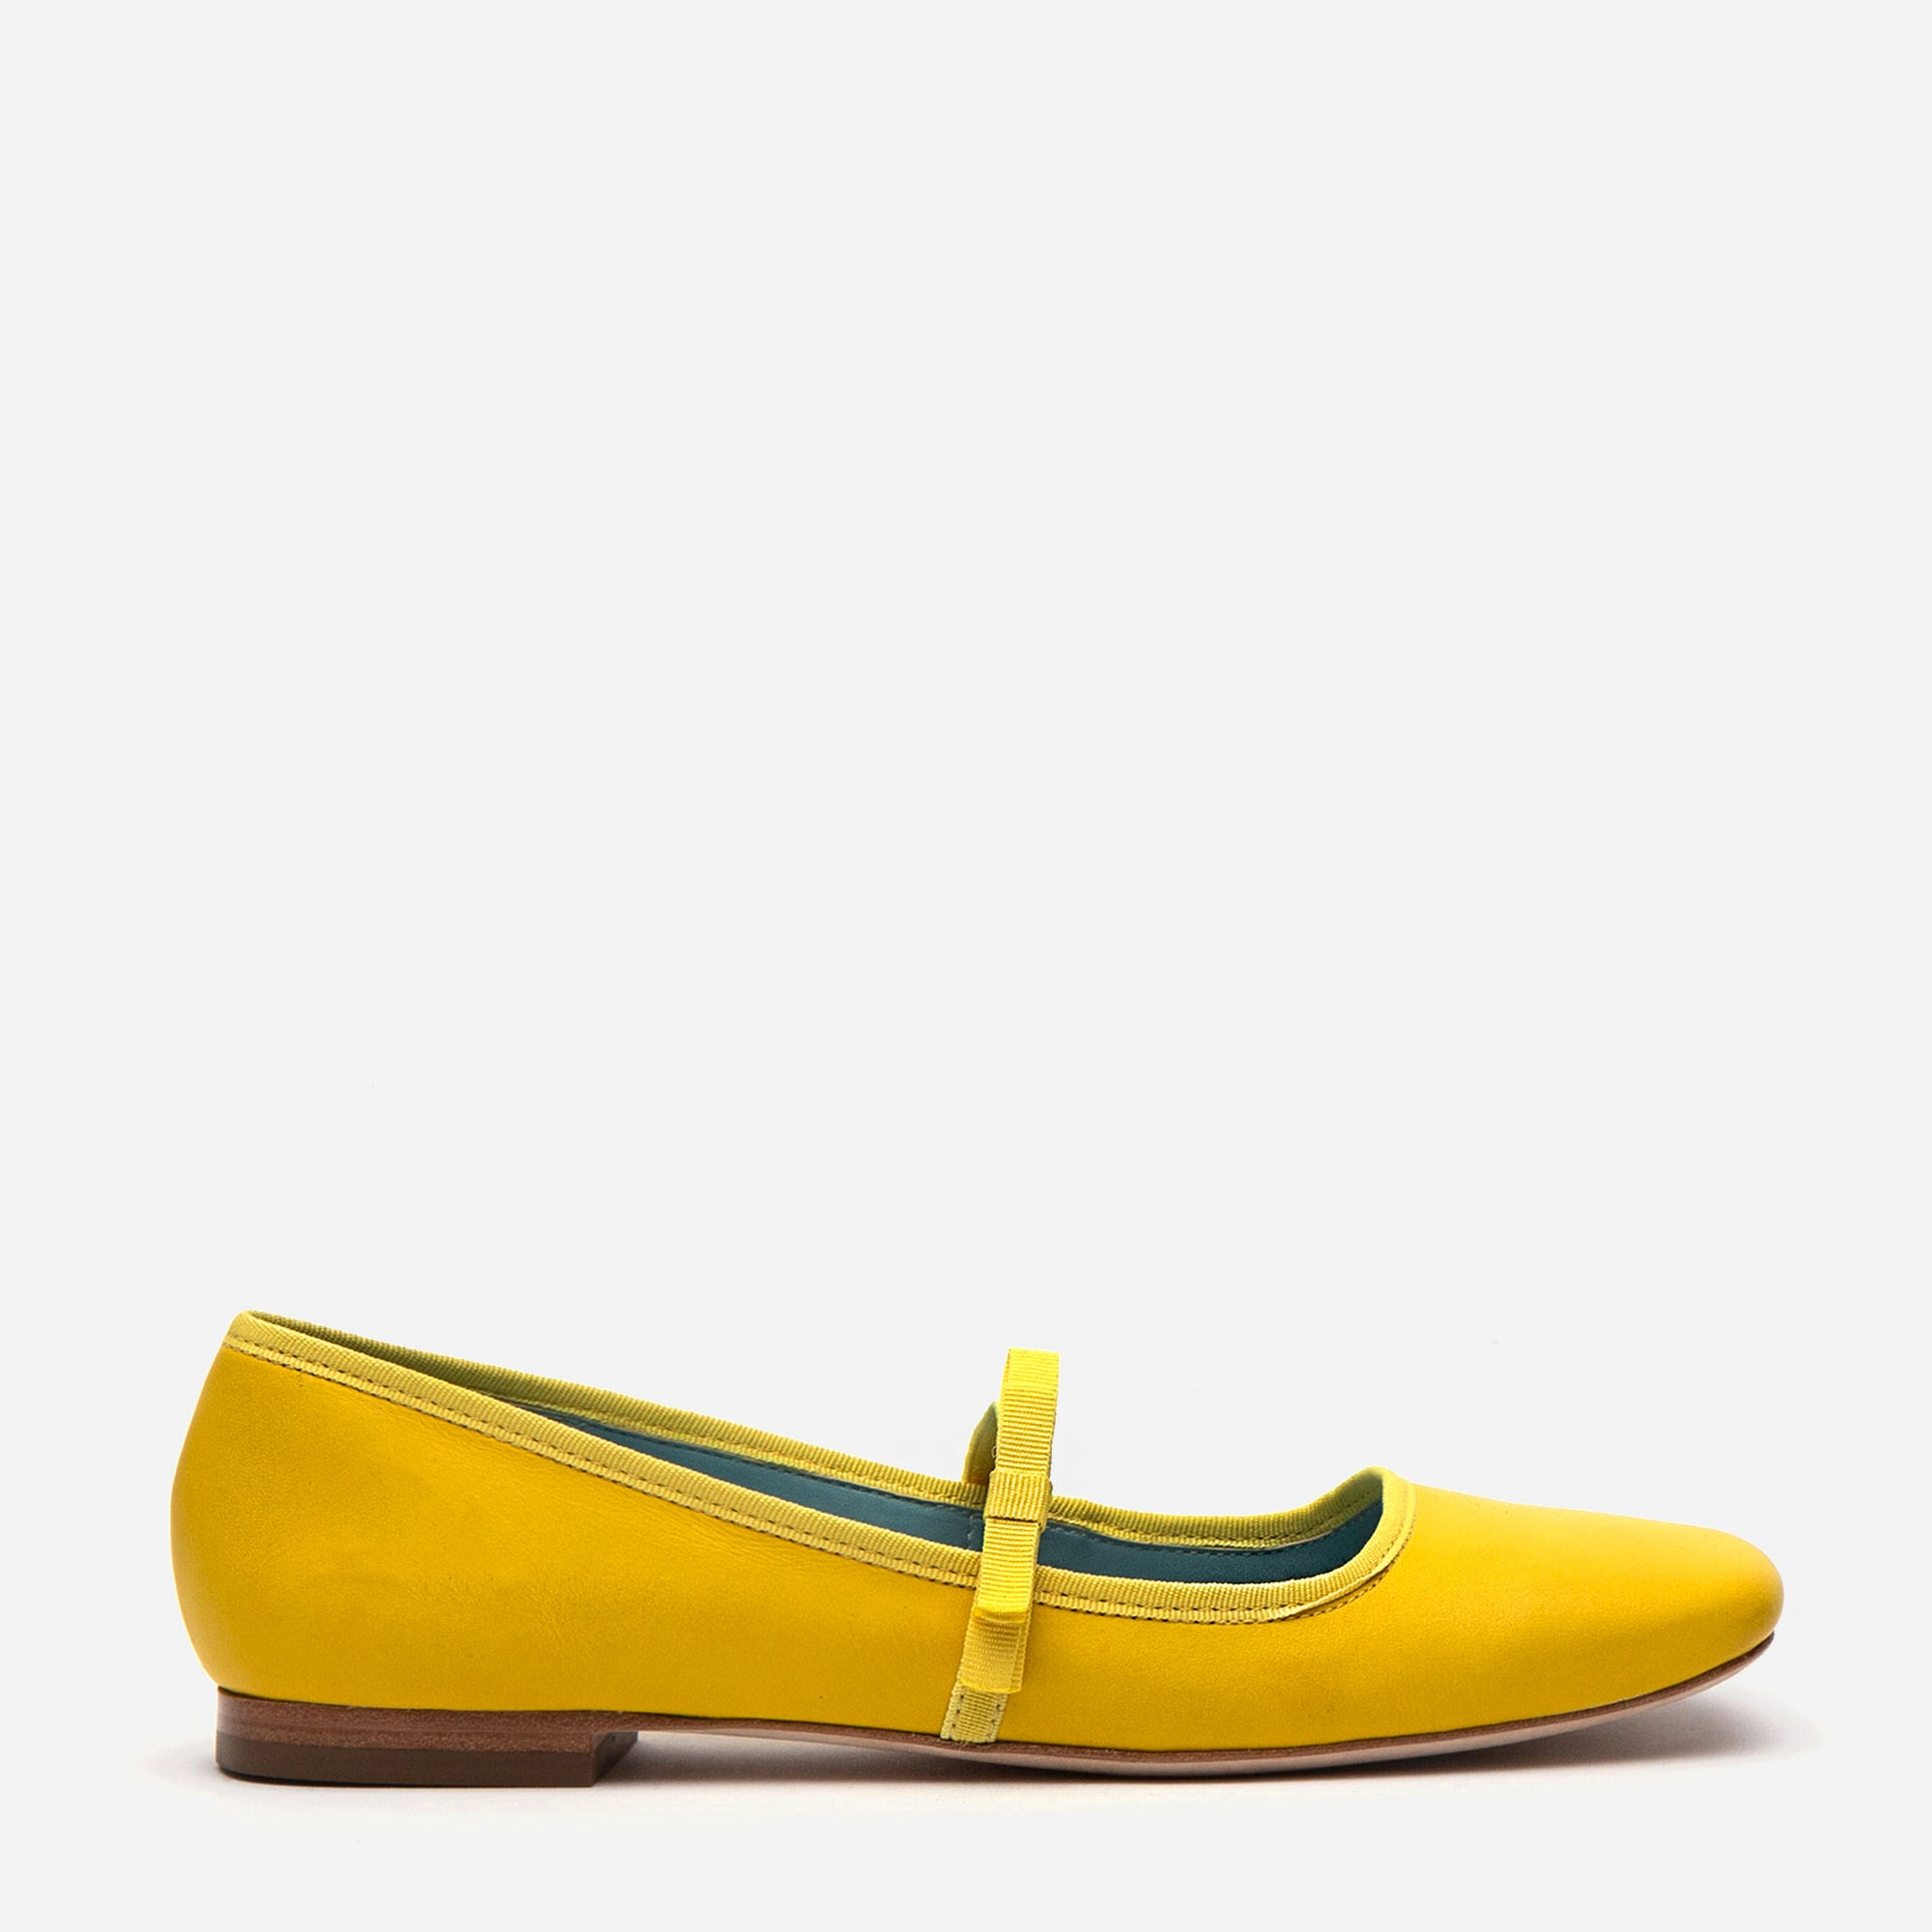 Jude Mary Jane Leather Flat Canary - Frances Valentine